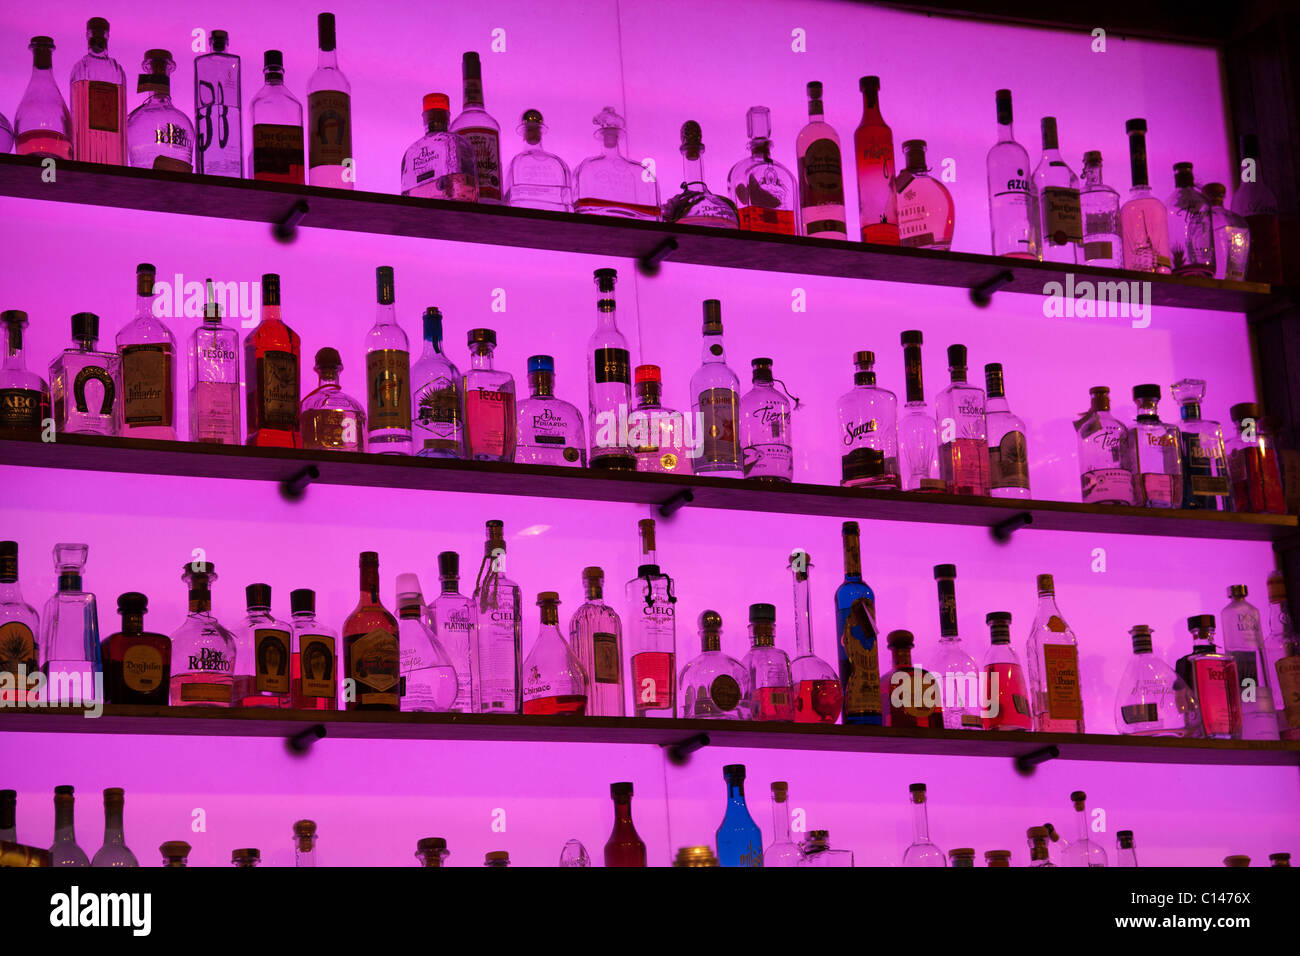 Slick display of glass liquor bottles on shelves with a bright purple glowing background in a bar Stock Photo